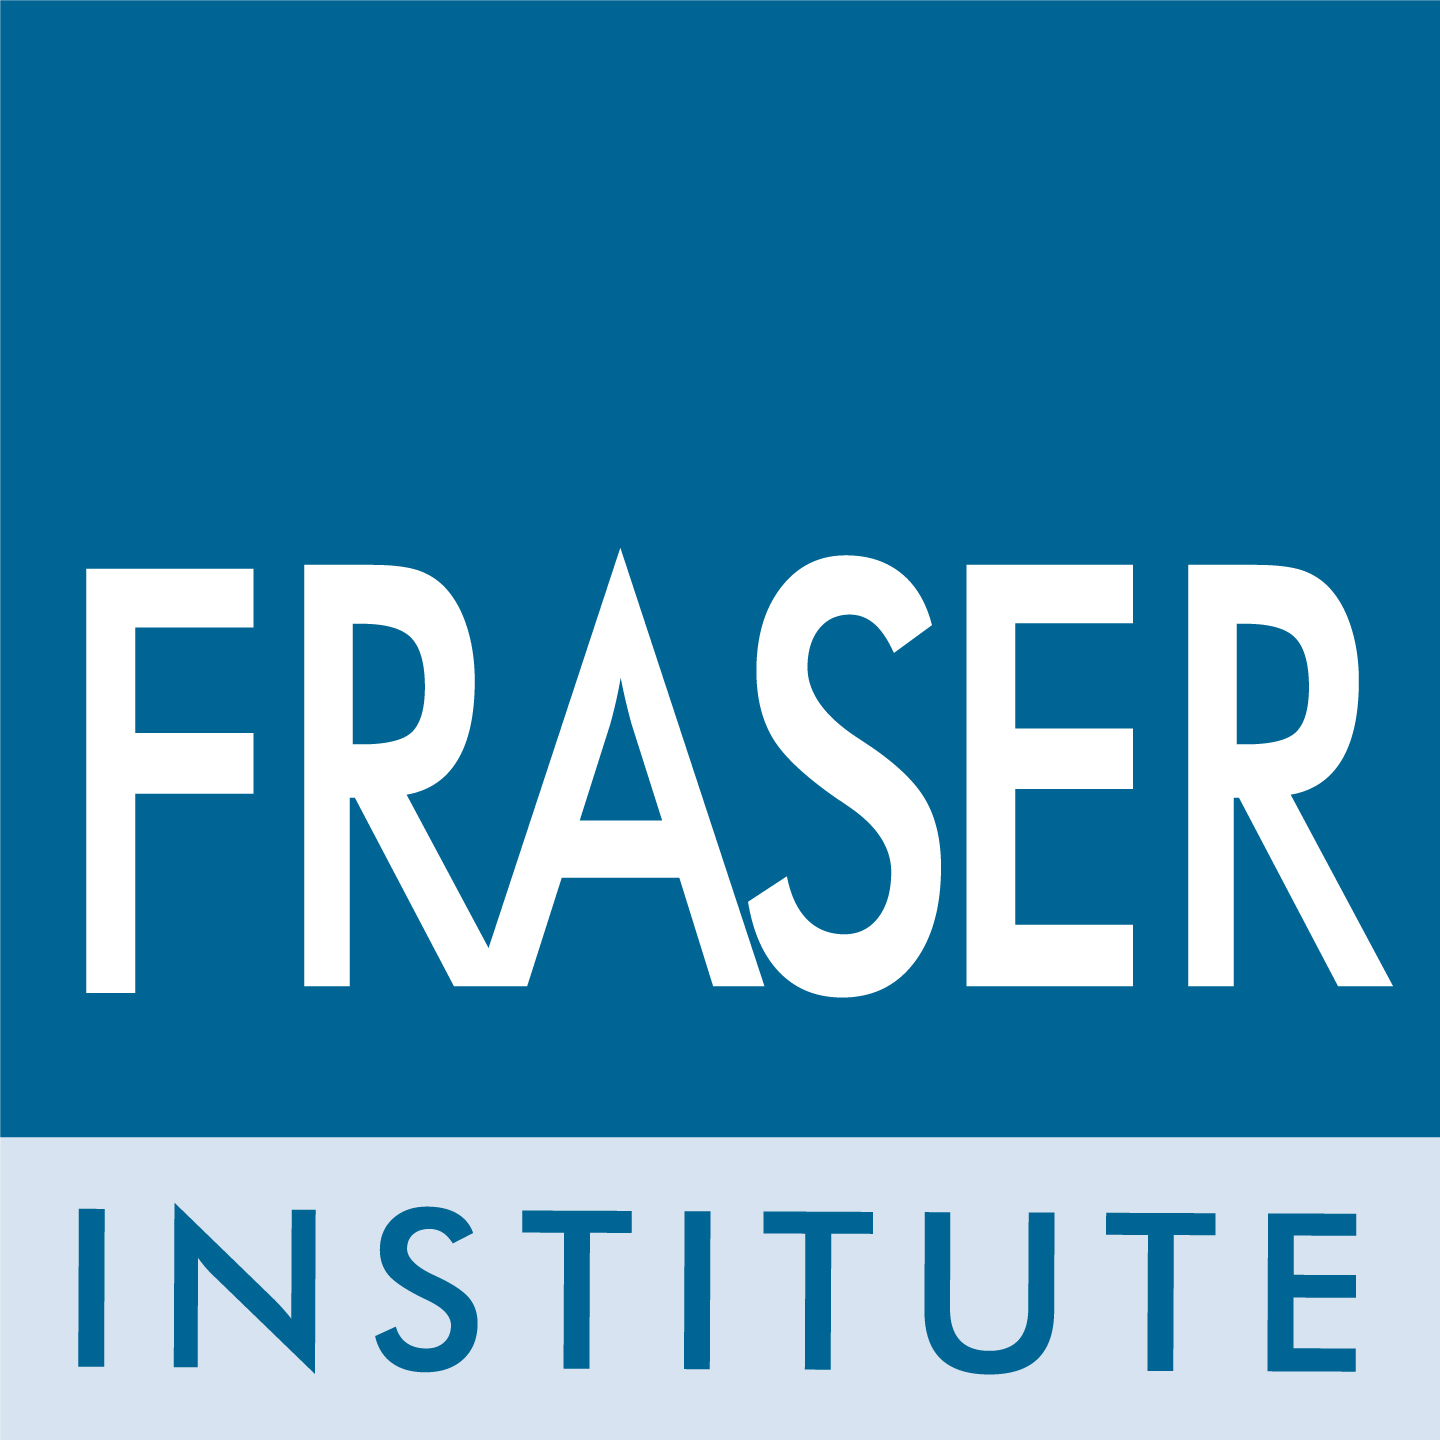 Fraser Institute News Release: Infrastructure spending not an effective tool for fighting recession